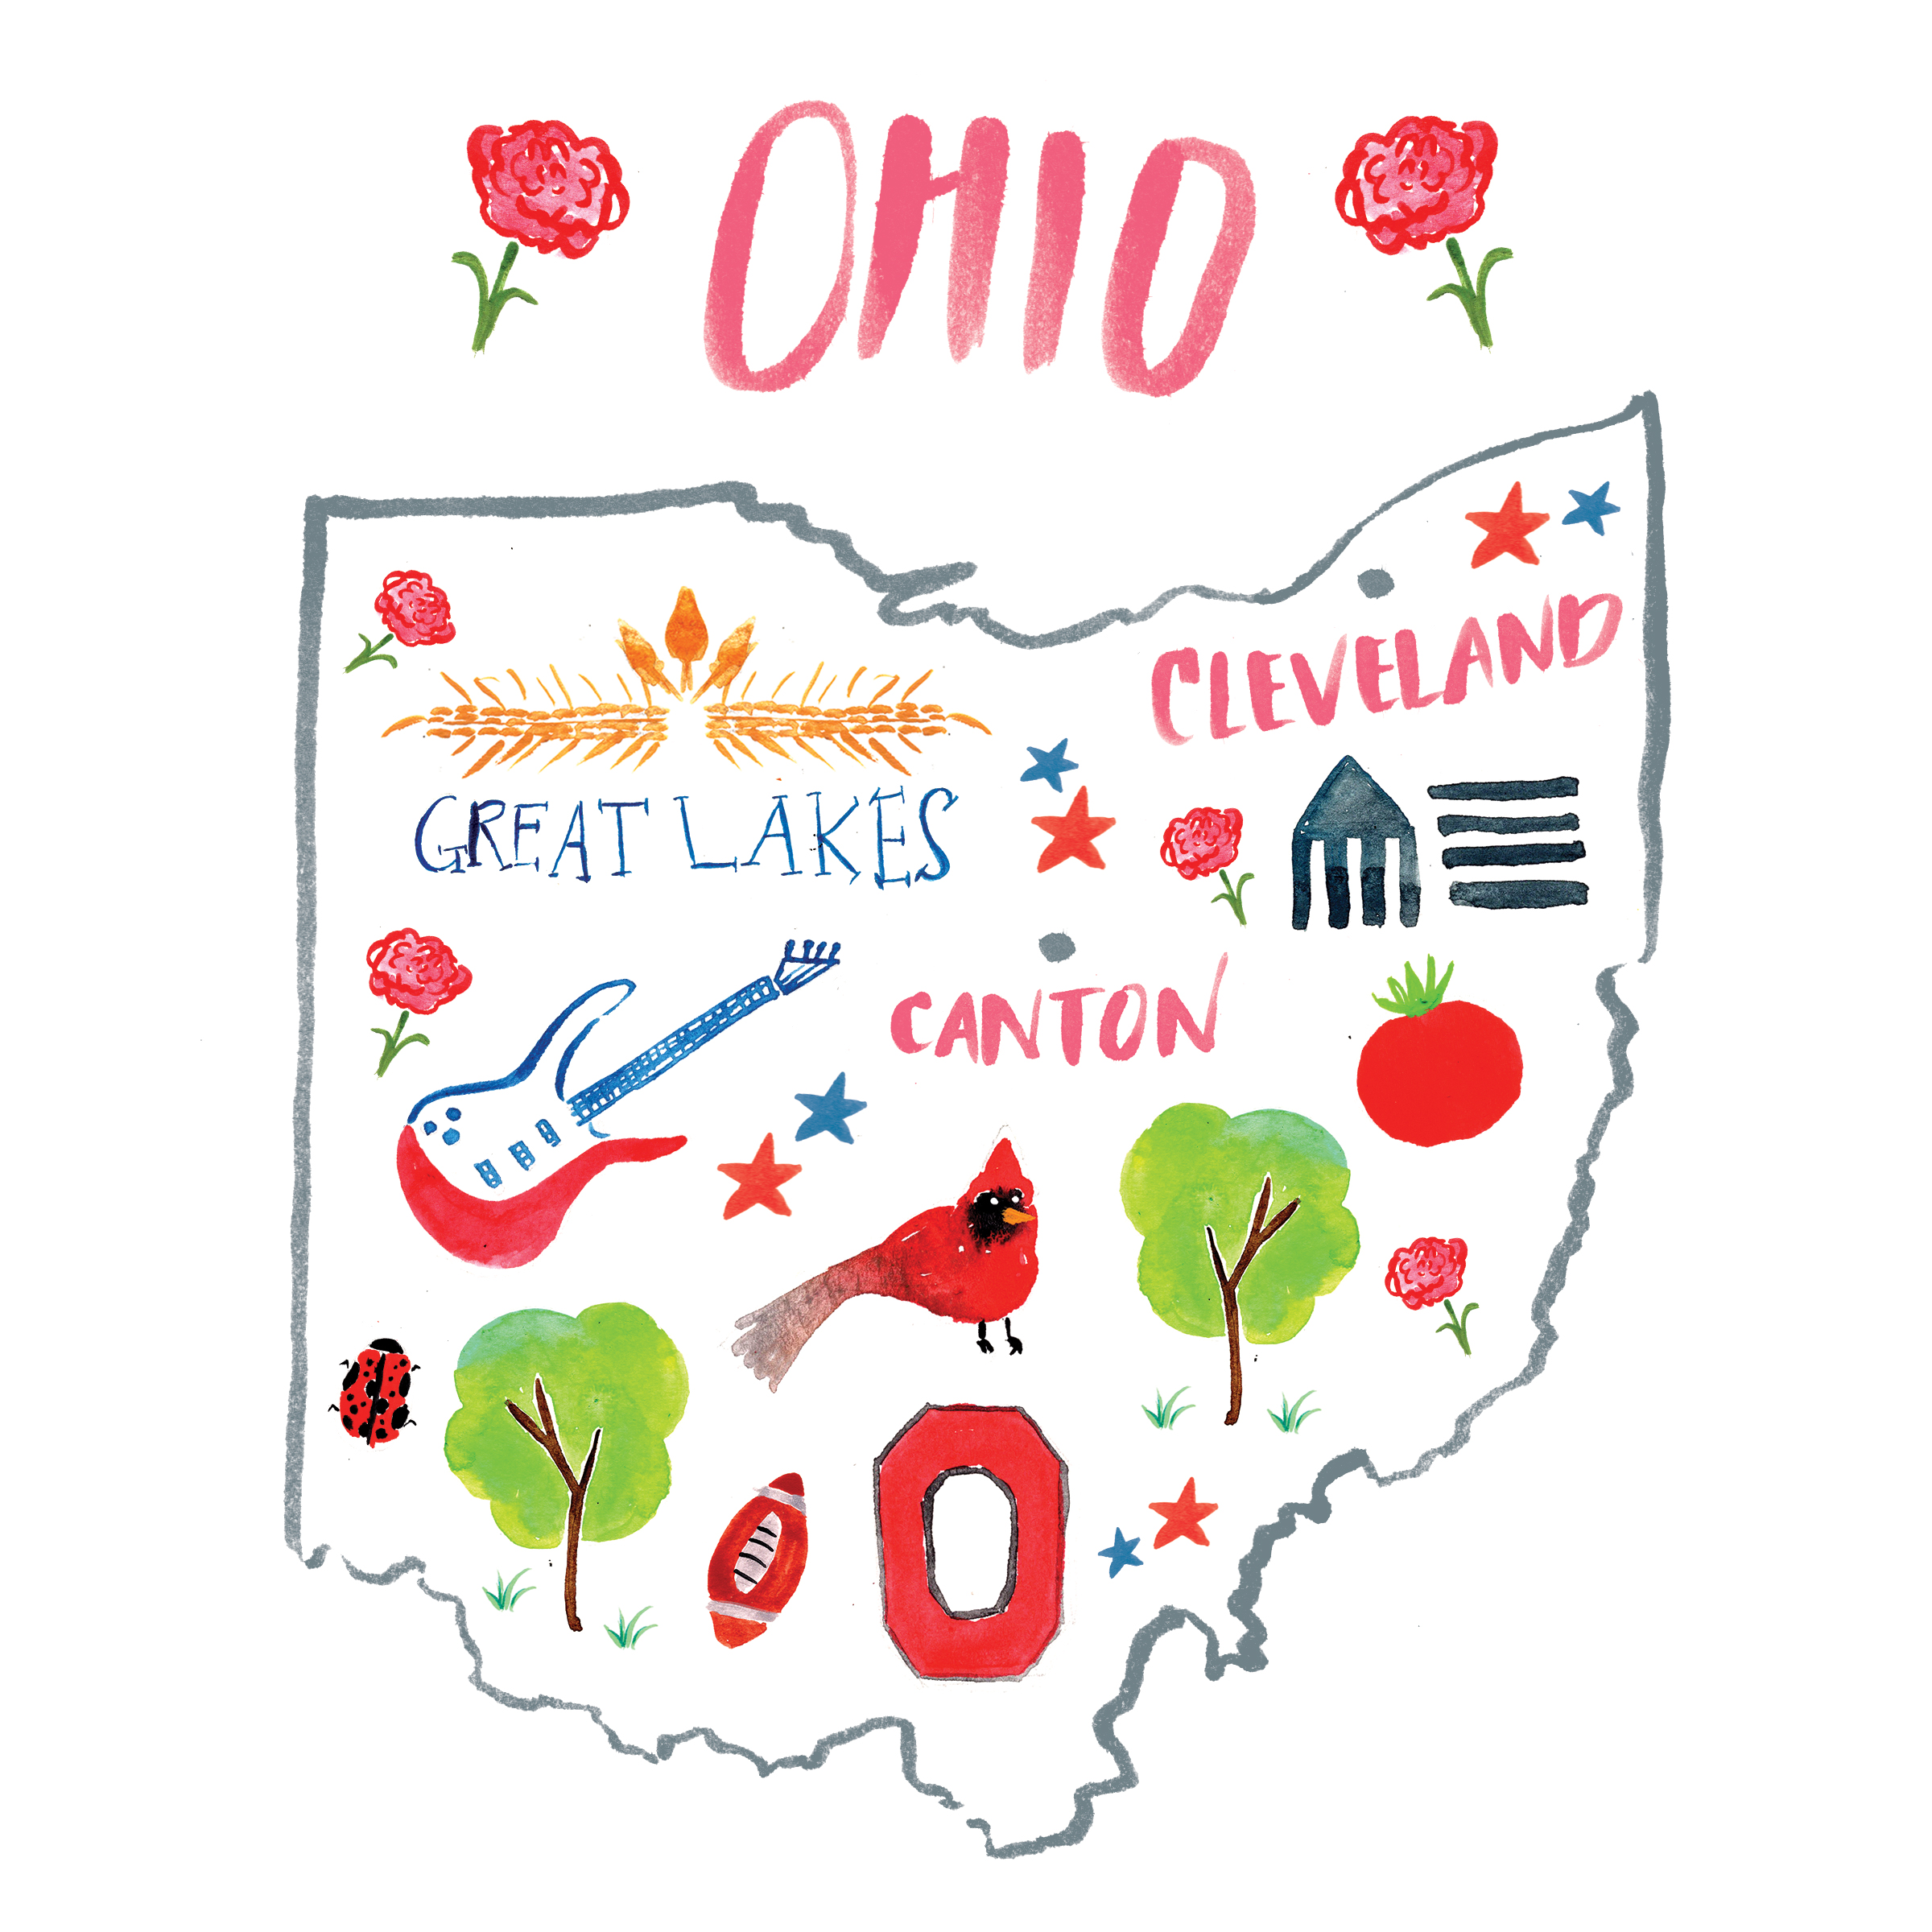 OHIO - Finishing out this week with a couple more maps! ✈️✌🏼️😁 When I visited Ohio it was a fun time with friends and family! Lots of laughs and lots of good food. I digged Cleveland's downtown area and especially loved Great Lakes brews. The highlight of my time there had to be the Cleveland Art Museum. The architecture and amazing exhibit had me refreshed and inspired.